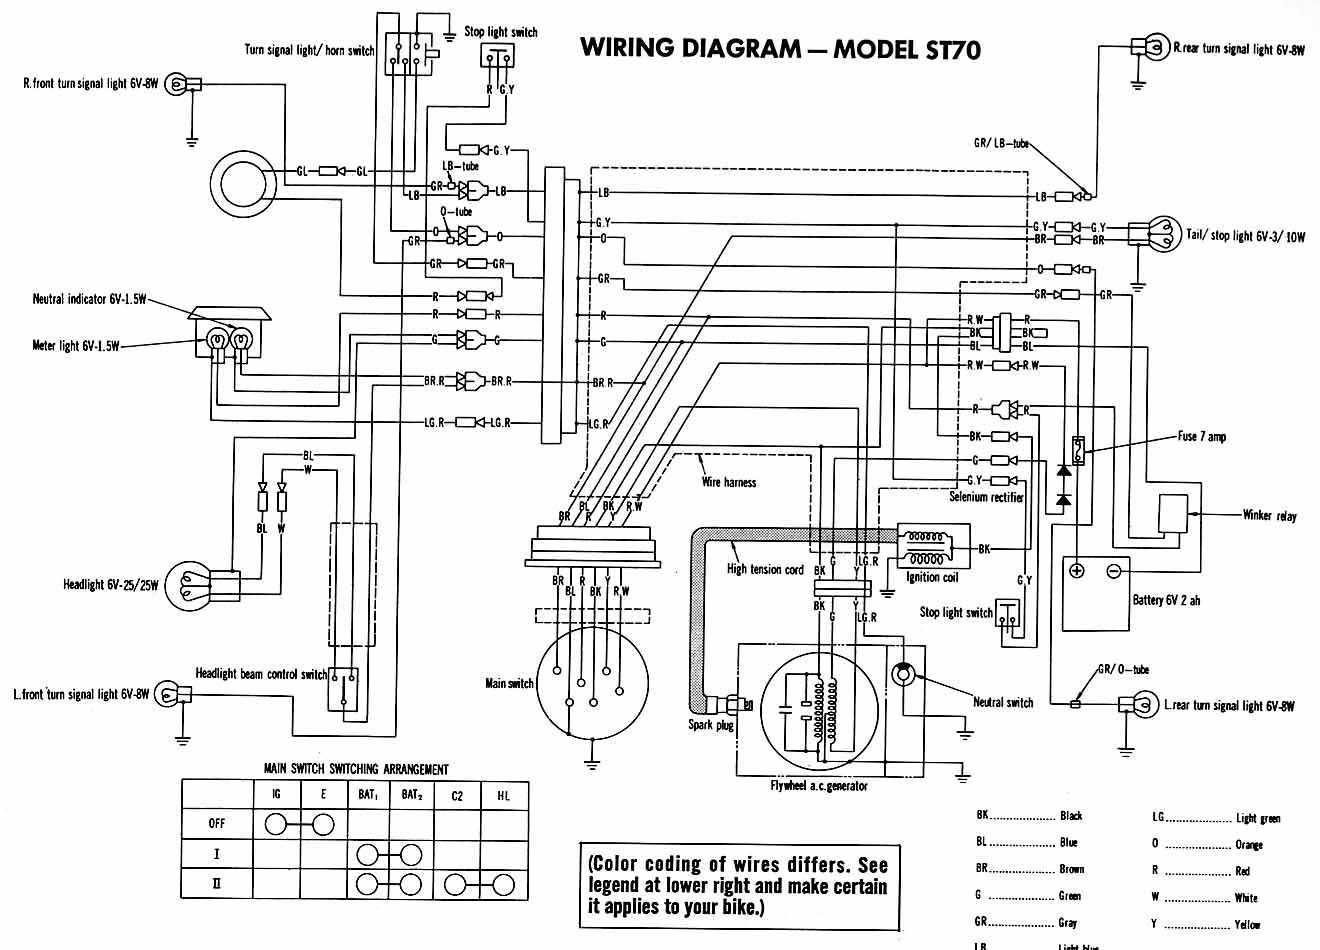 2000 Yamaha Yzf R6 Wiring Diagram Human Digestive System Labeled Ignition Switch Rhino